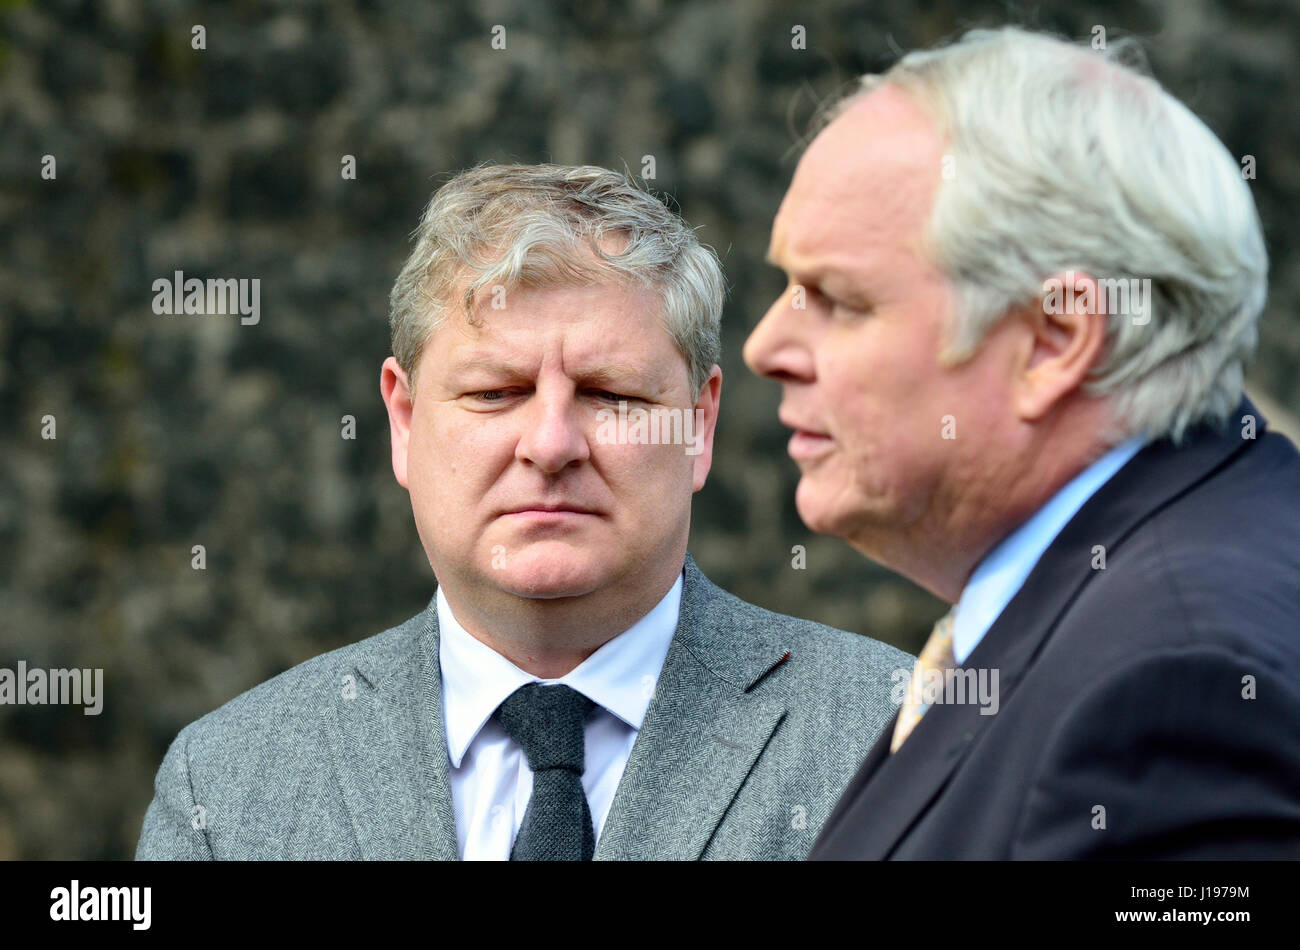 Angus Robertson MP (SNP: Moray) being interviewed by Adam Bolton (Sky News) on College Green, Westminster 18th April - Stock Image